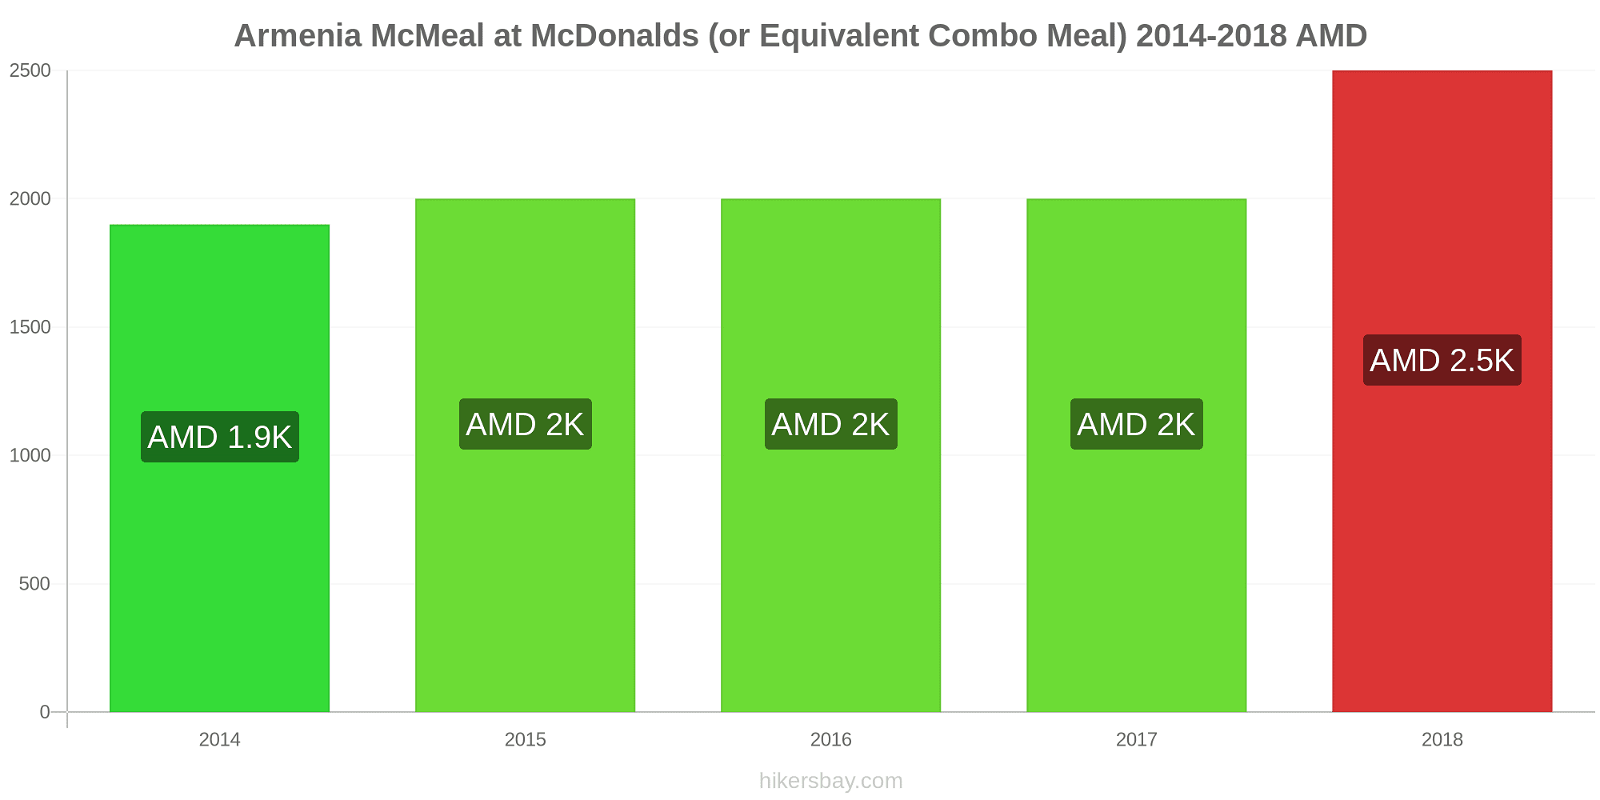 Armenia price changes McMeal at McDonalds (or Equivalent Combo Meal) hikersbay.com